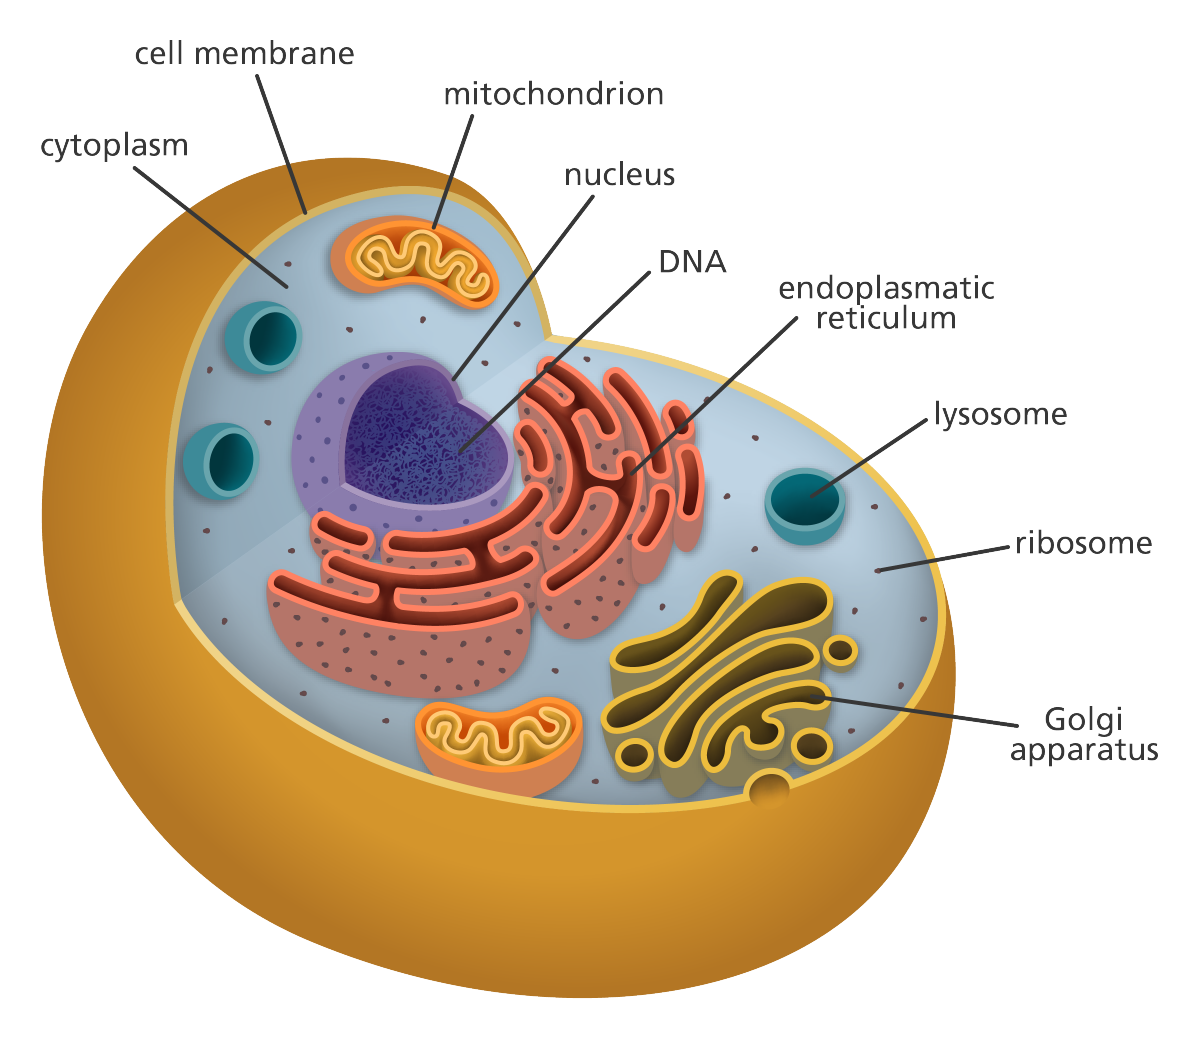 hight resolution of 3d animal cell project cell model project animal projects human cell structure